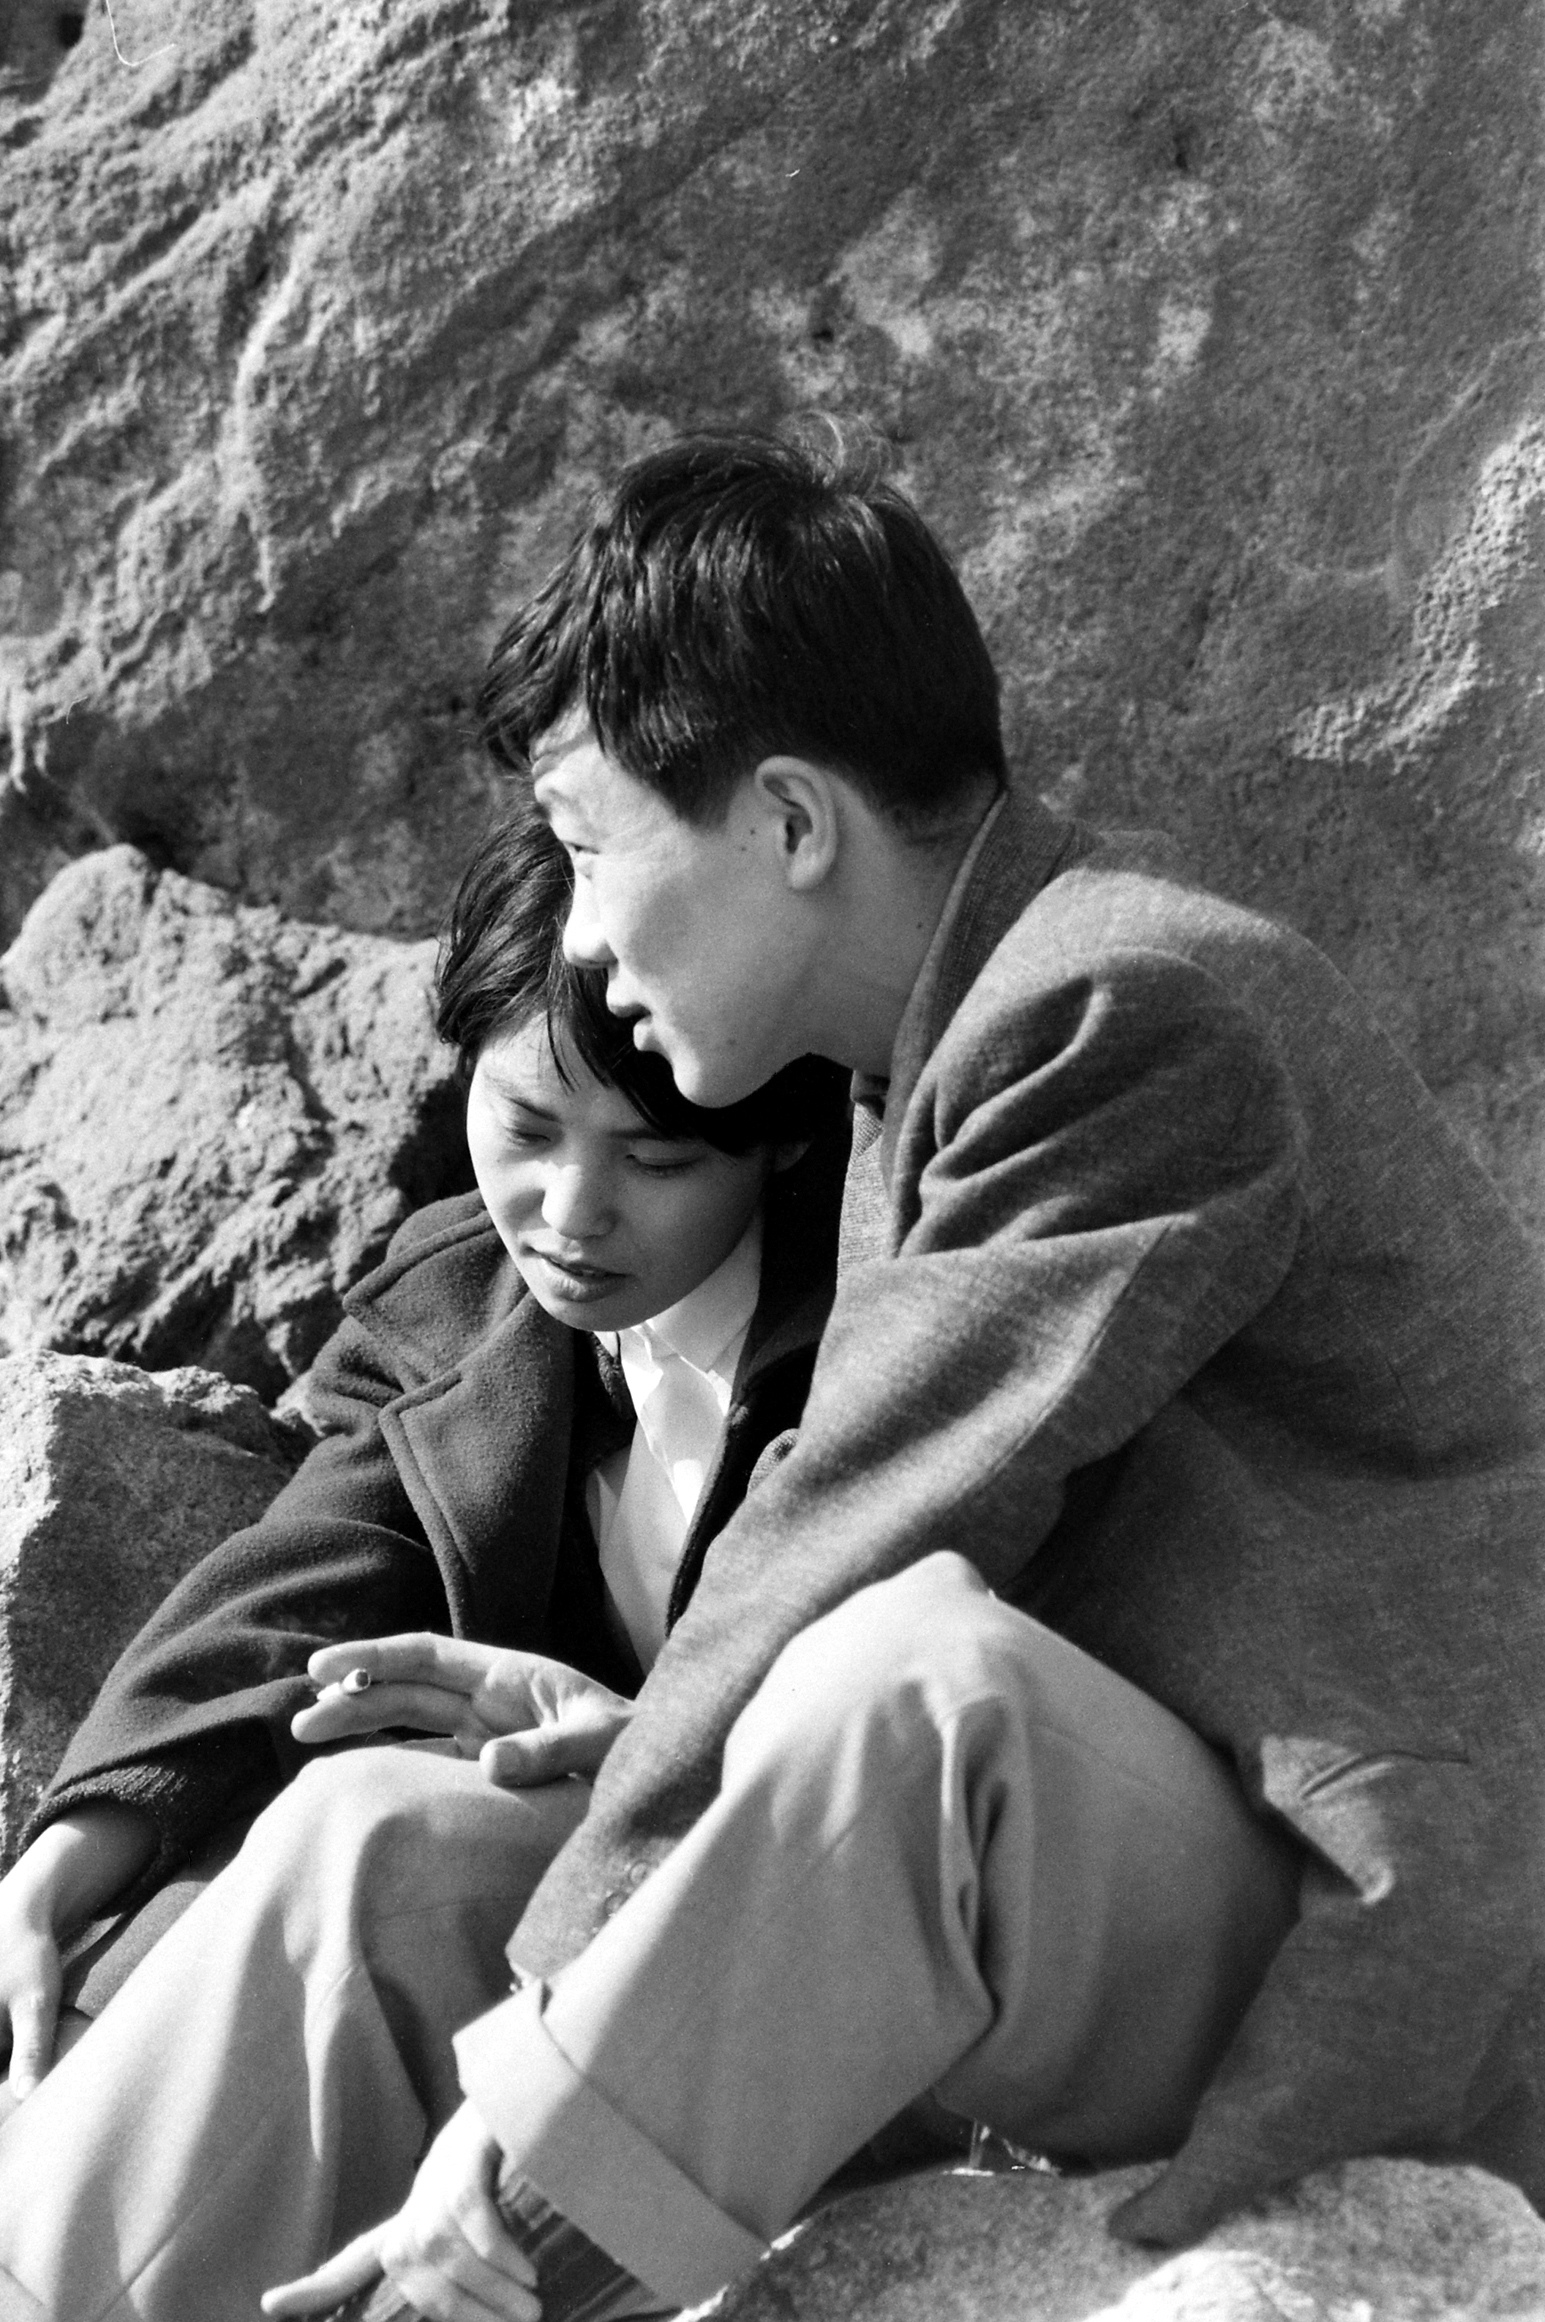 Chiyoko Inami, left, and her boyfriend, Akiksuke Tsutsui, right, sharing an intimate moment on a date.  March, 1959.